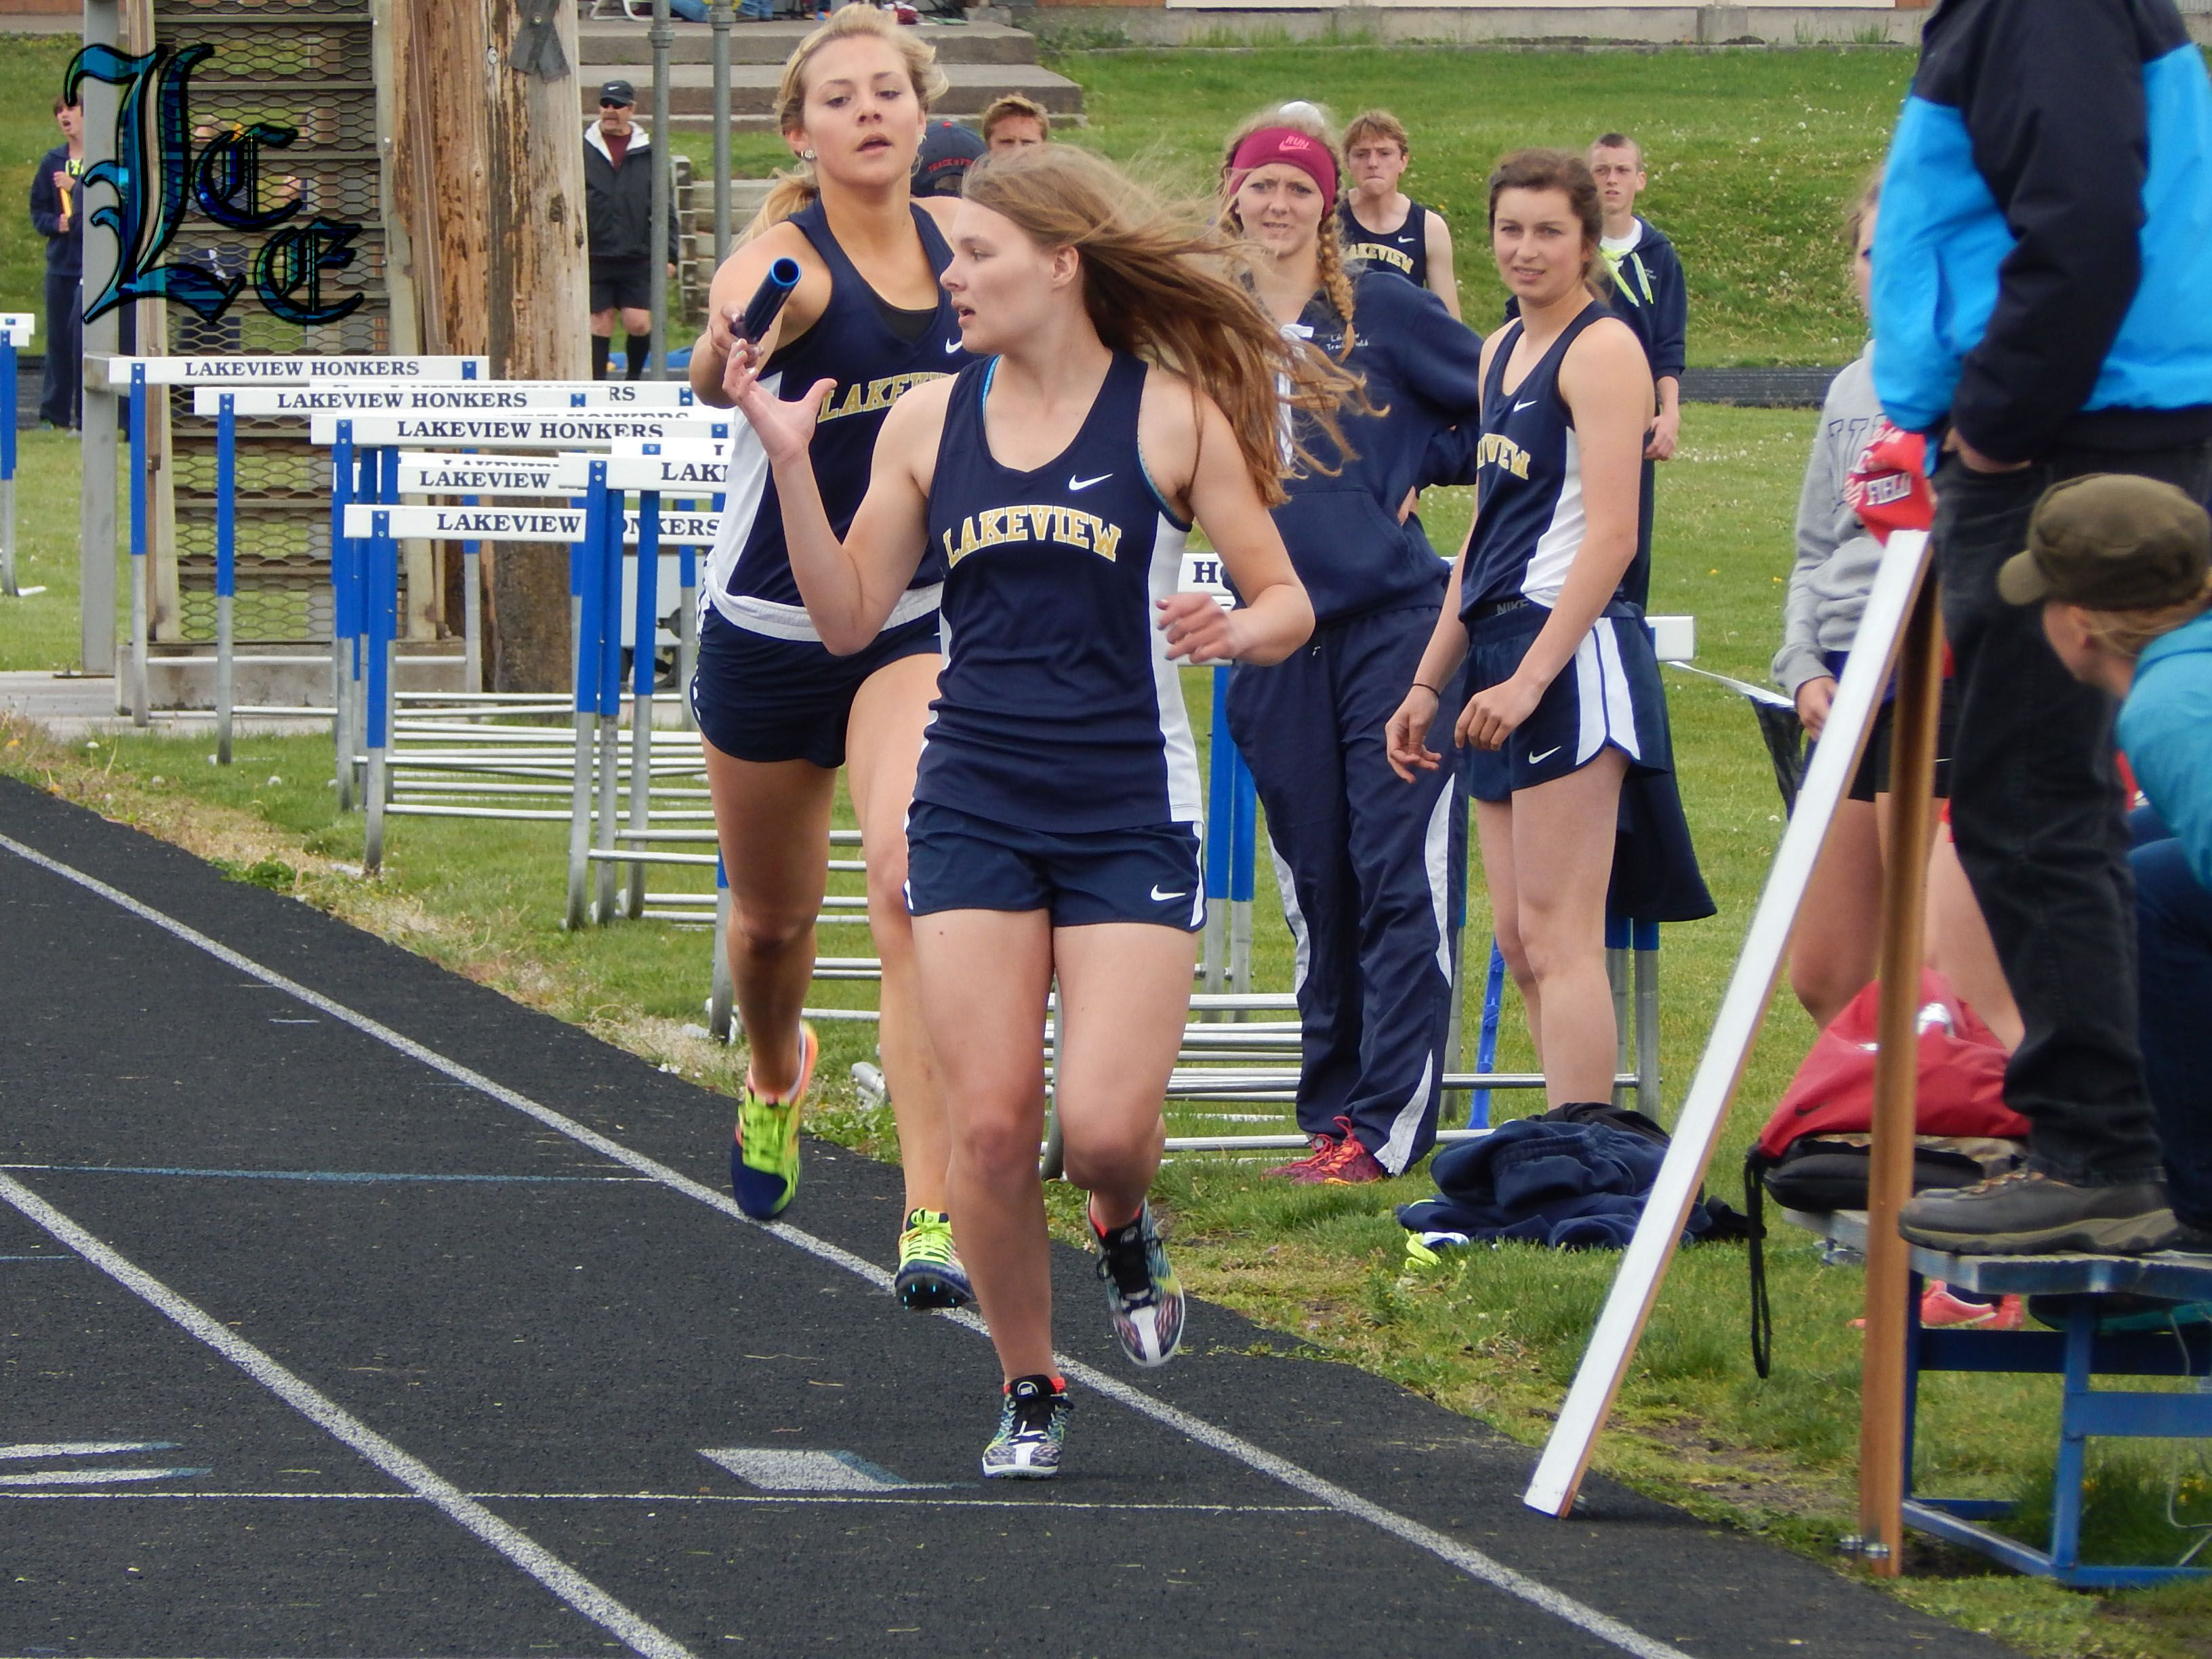 Saturday, May 7,. 2016: Lakeview High School hosted the Lakeview Invitational, the final track meet of the season before the district tournament. The LHS boys and girls teams both took first place in team points. For more read the Wednesday, May 11, 2016 Lake County Examiner.